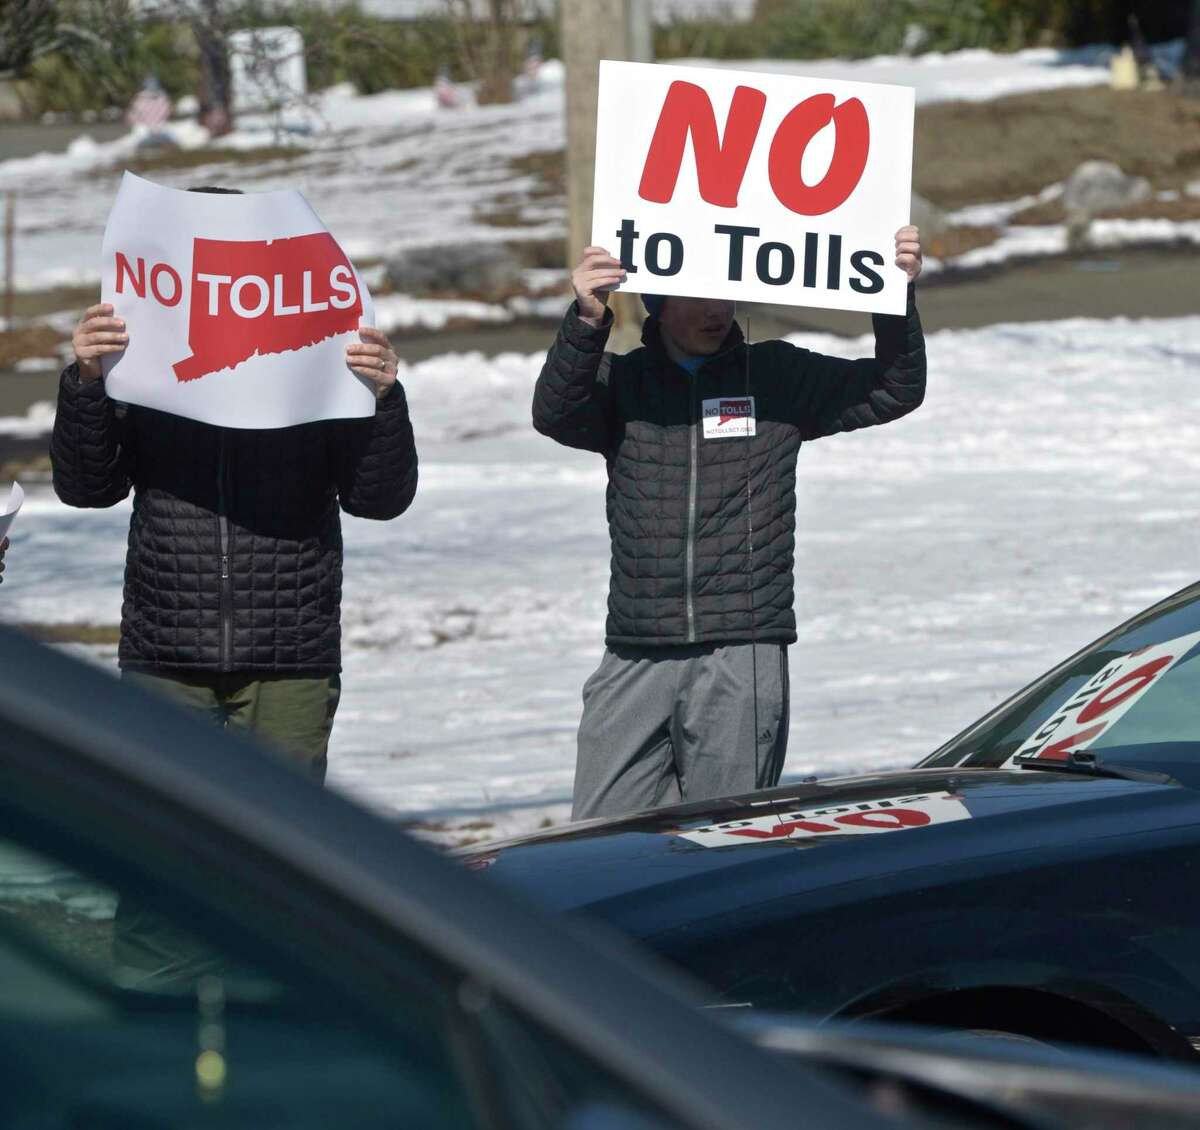 Stamford grassroots organization No Tolls Ct held an anti-toll protest at the White Street and Wildman Street intersection. Saturday, March 9, 2019, in Danbury, Conn.